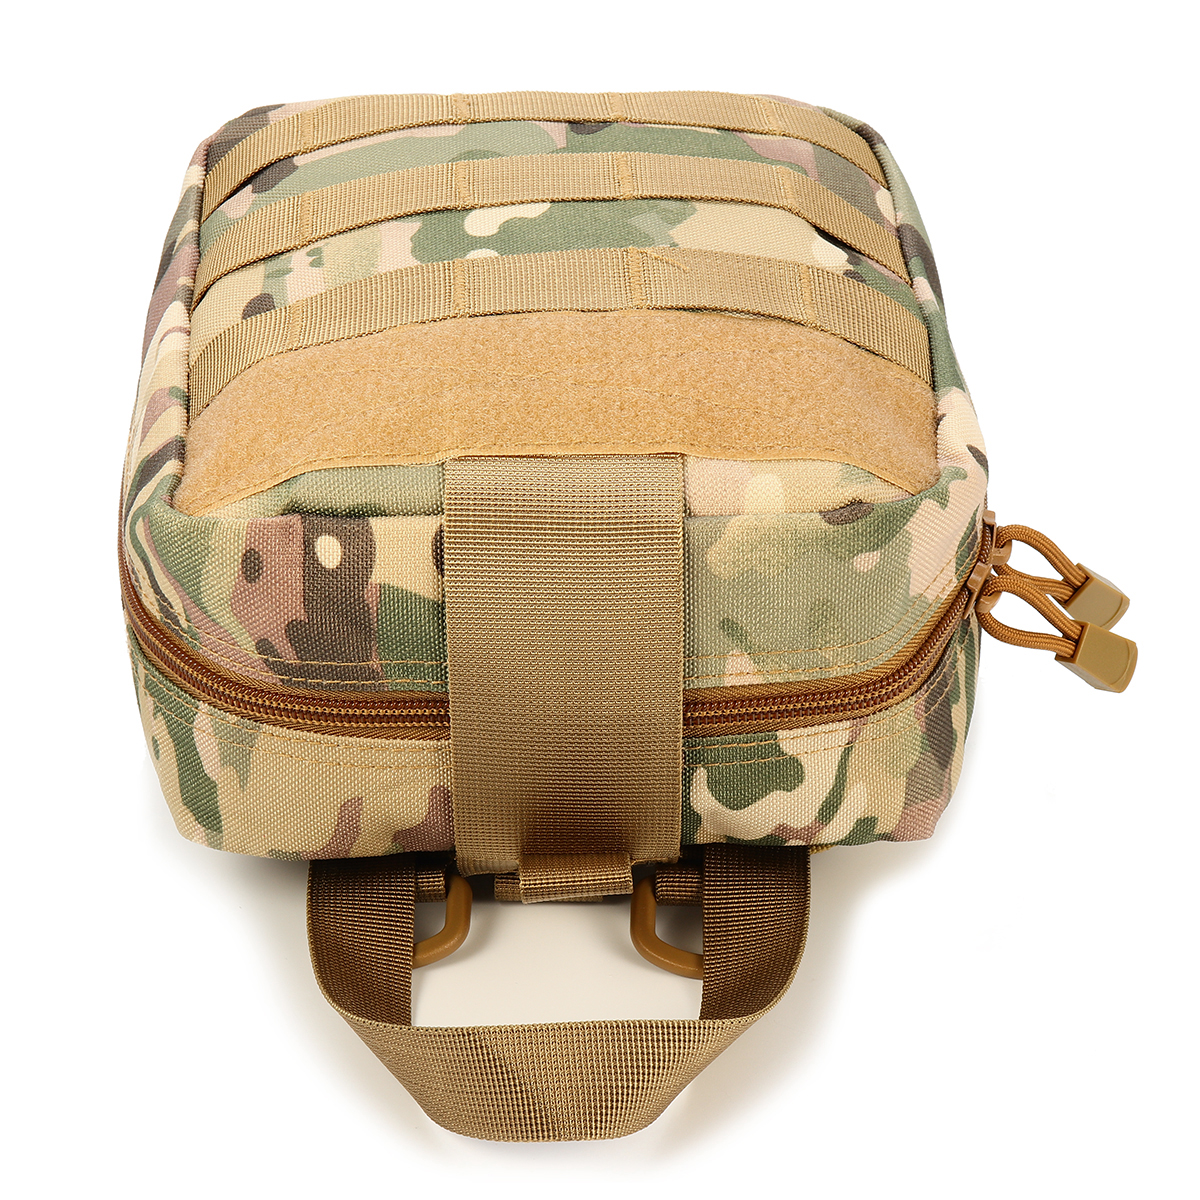 Outdoor Tactical Molle Bag Emergency Survival First Aid Belt Nylon Pouch